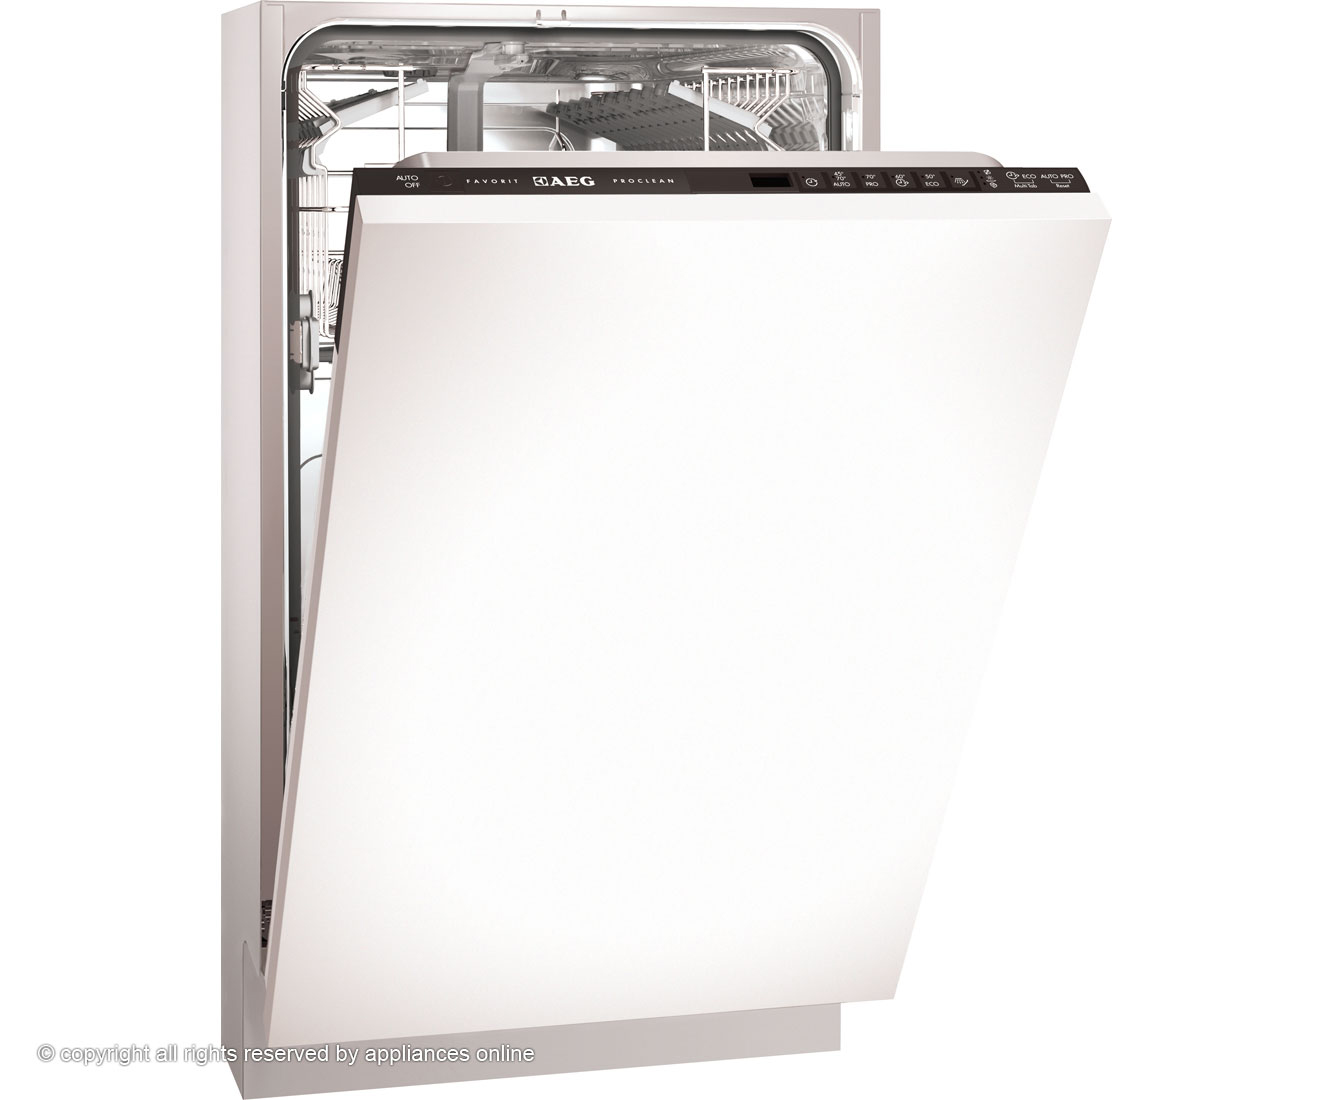 Aeg Online Shop Aeg Integrated Dishwasher Shop For Cheap Dishwashers And Save Online